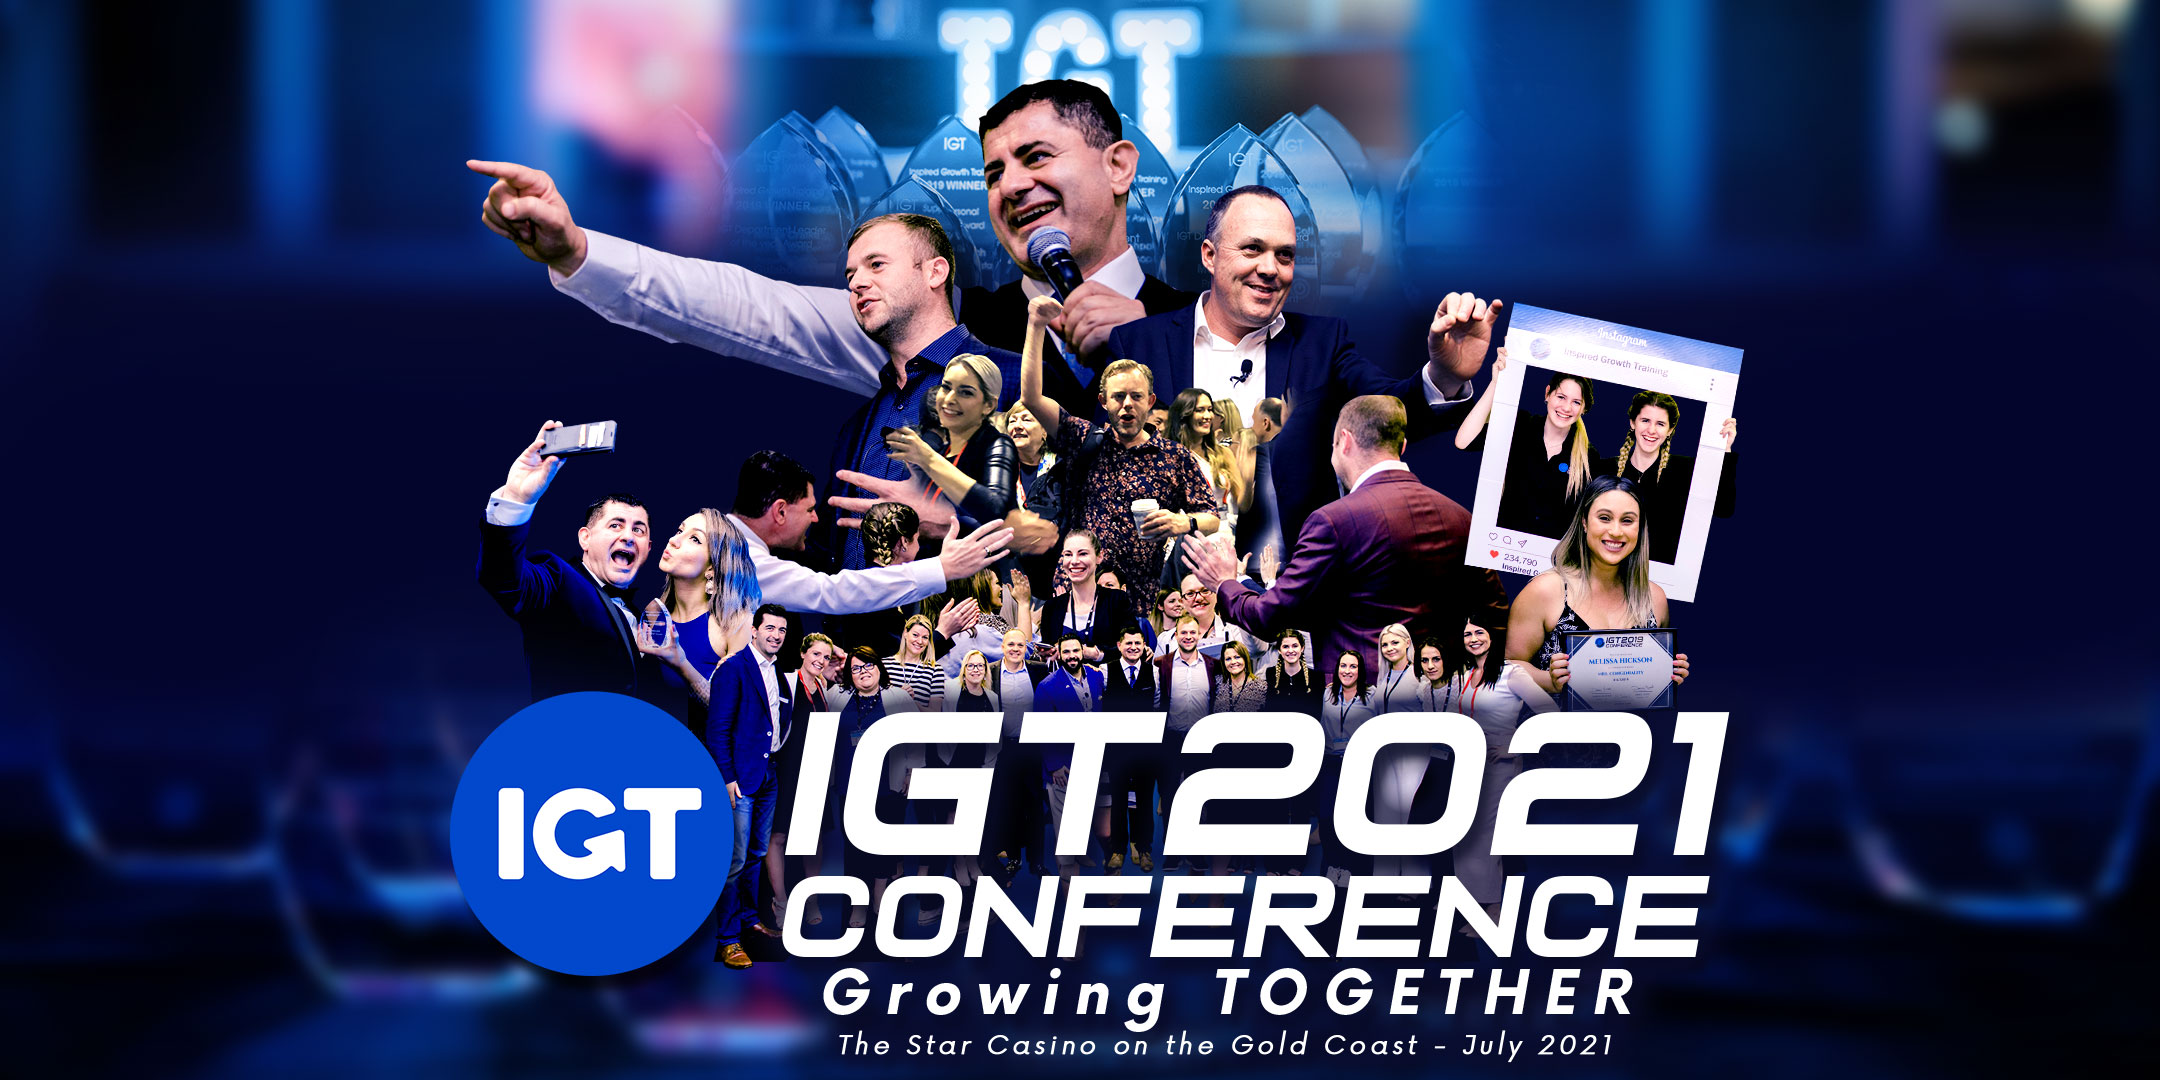 IGT Conference 2021